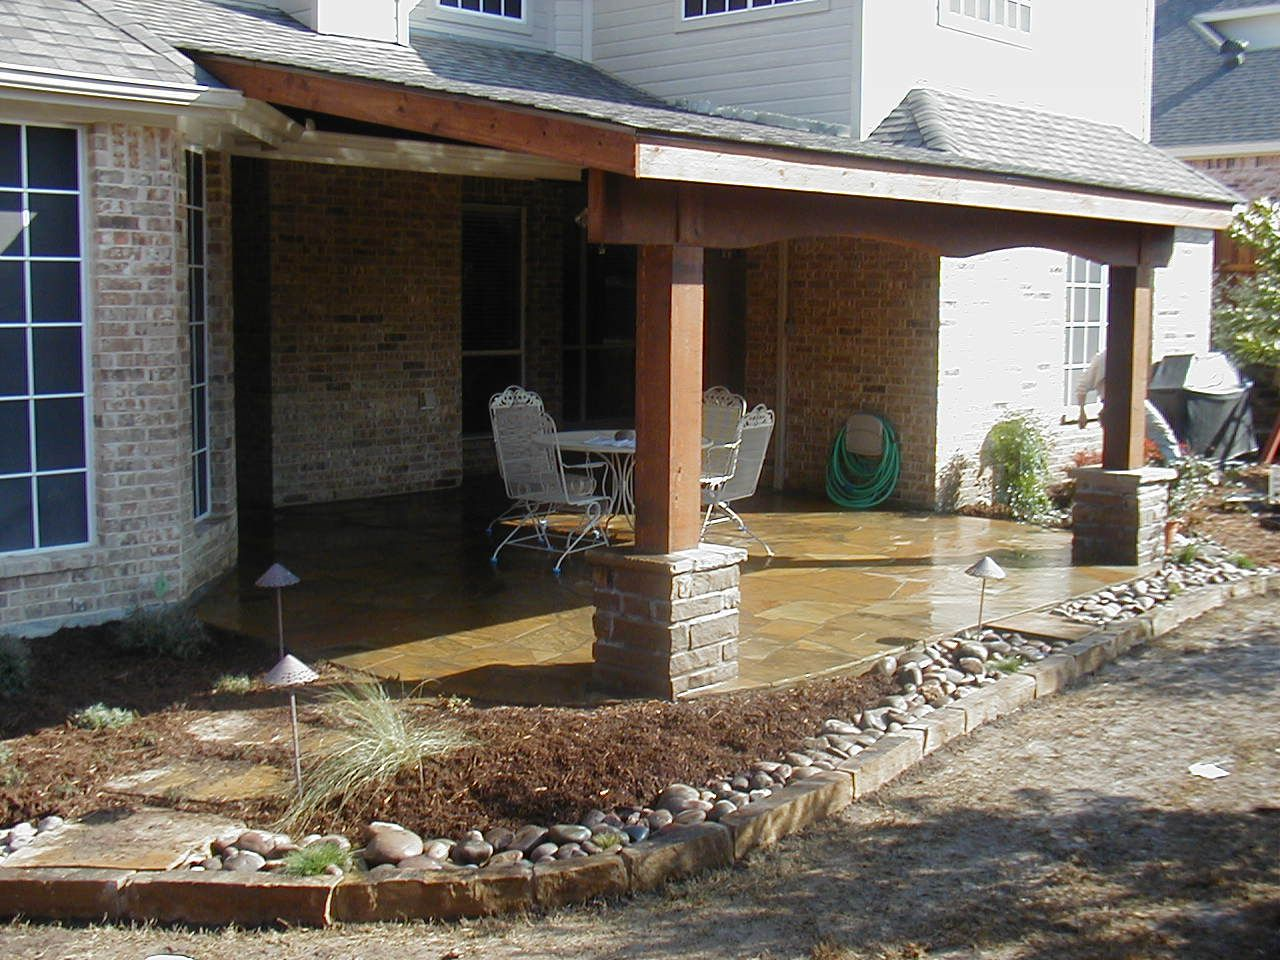 patio cover ideas building an attached patio cover | patio cover attached to house DHPHOSJ